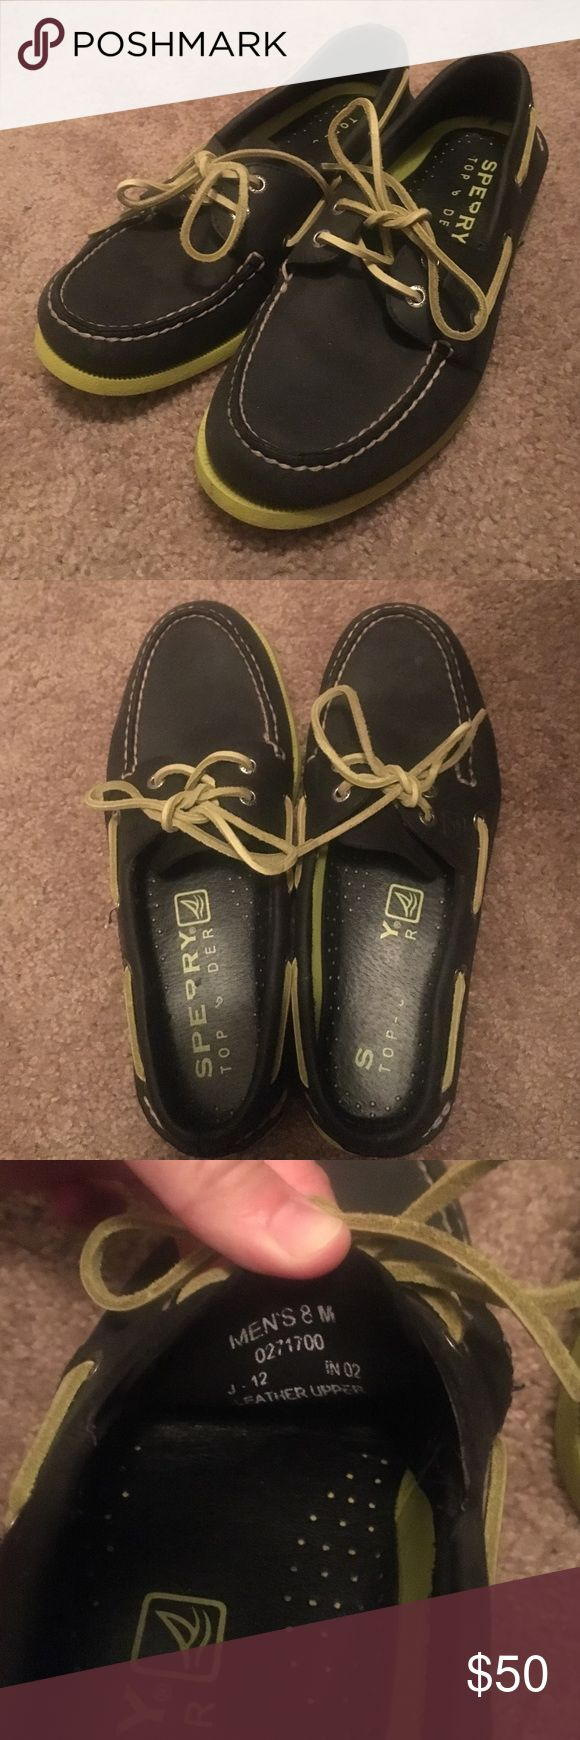 Sperry Topsider men's size 8/women's size 9 Black sperry topsiders with lime green soles, laces, and accents. They are men's size 8, work for women's size 9. They have only been worn once. Sperry Top-Sider Shoes Flats & Loafers